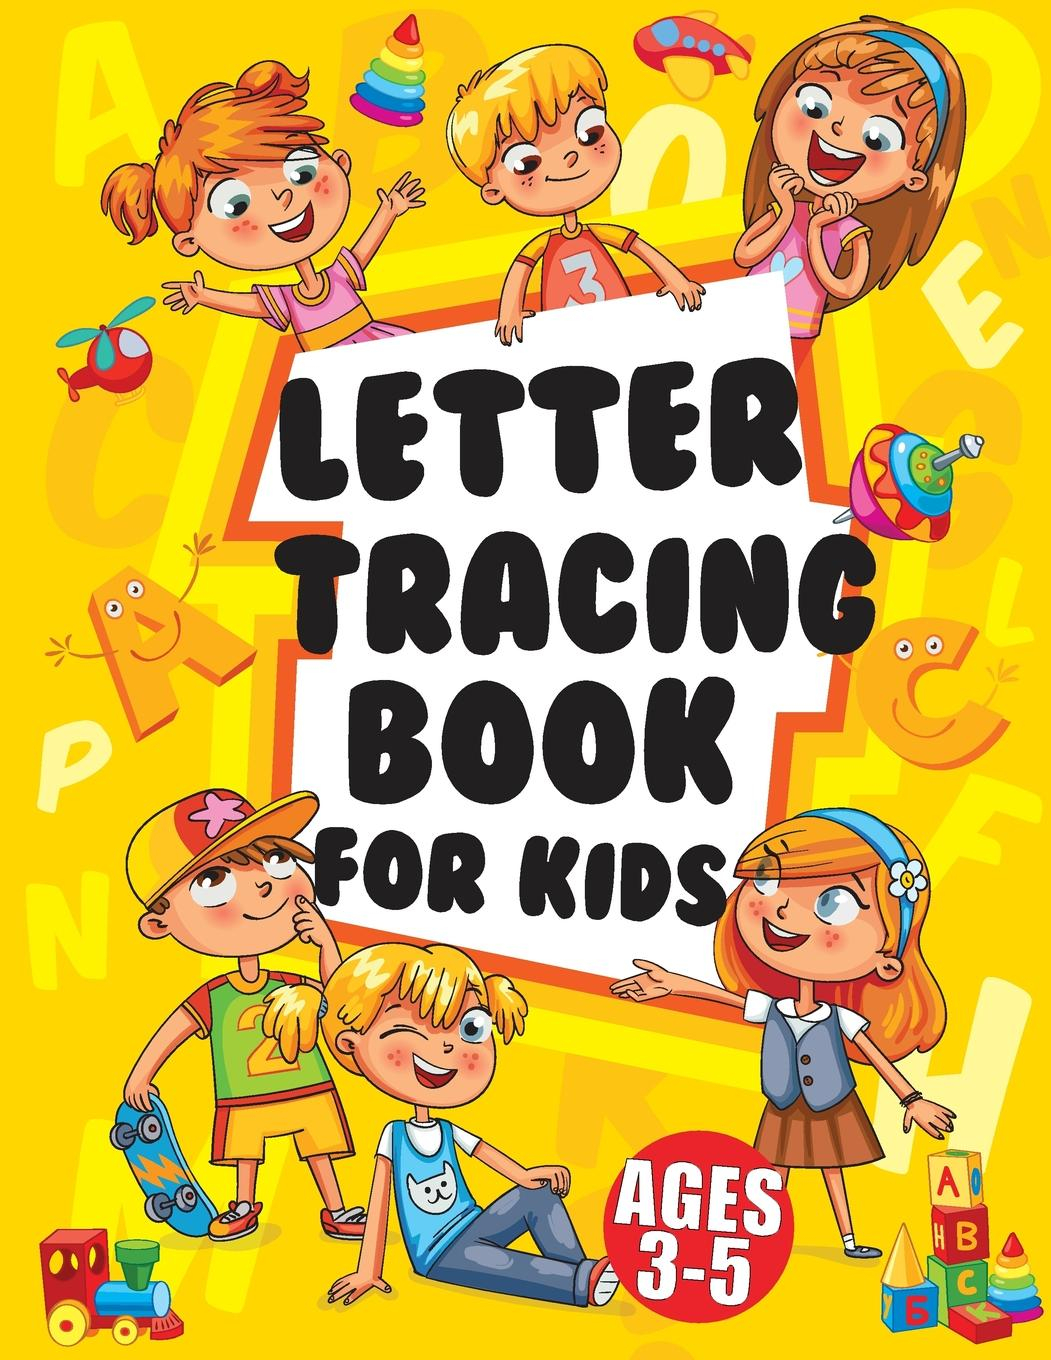 Letter Tracing Books For Kids Ages 3-5 : Large Print Trace Letters (Book  Size 8.5X11 Inches) - Trace Letters Of The Alphabet Practicing With (Kids